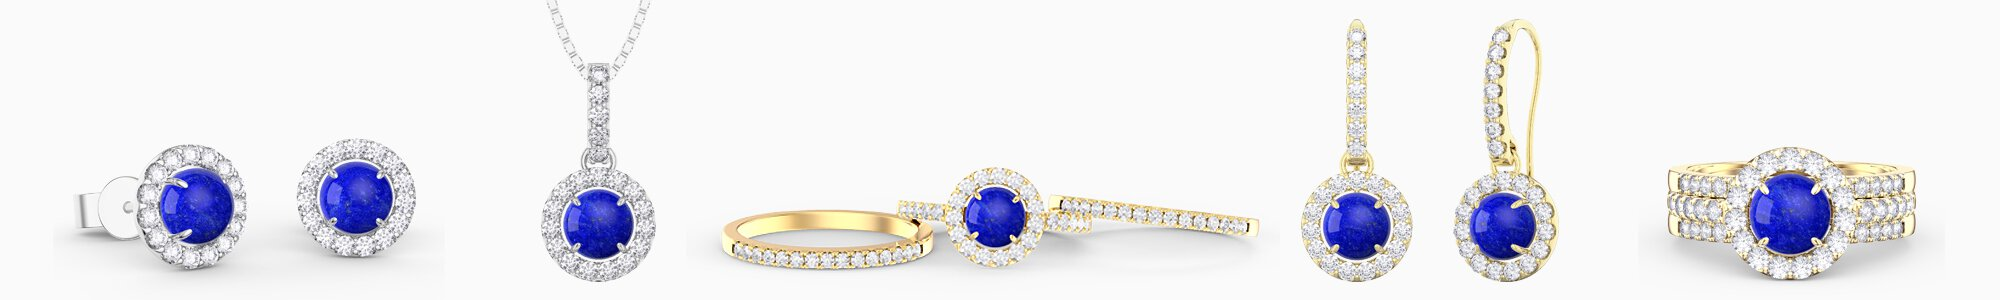 Lapis Lazuli Jewellery - Wide Selection of Lapis Lazuli Earrings, Pendants, Engagement Rings, Bracelets and Necklaces